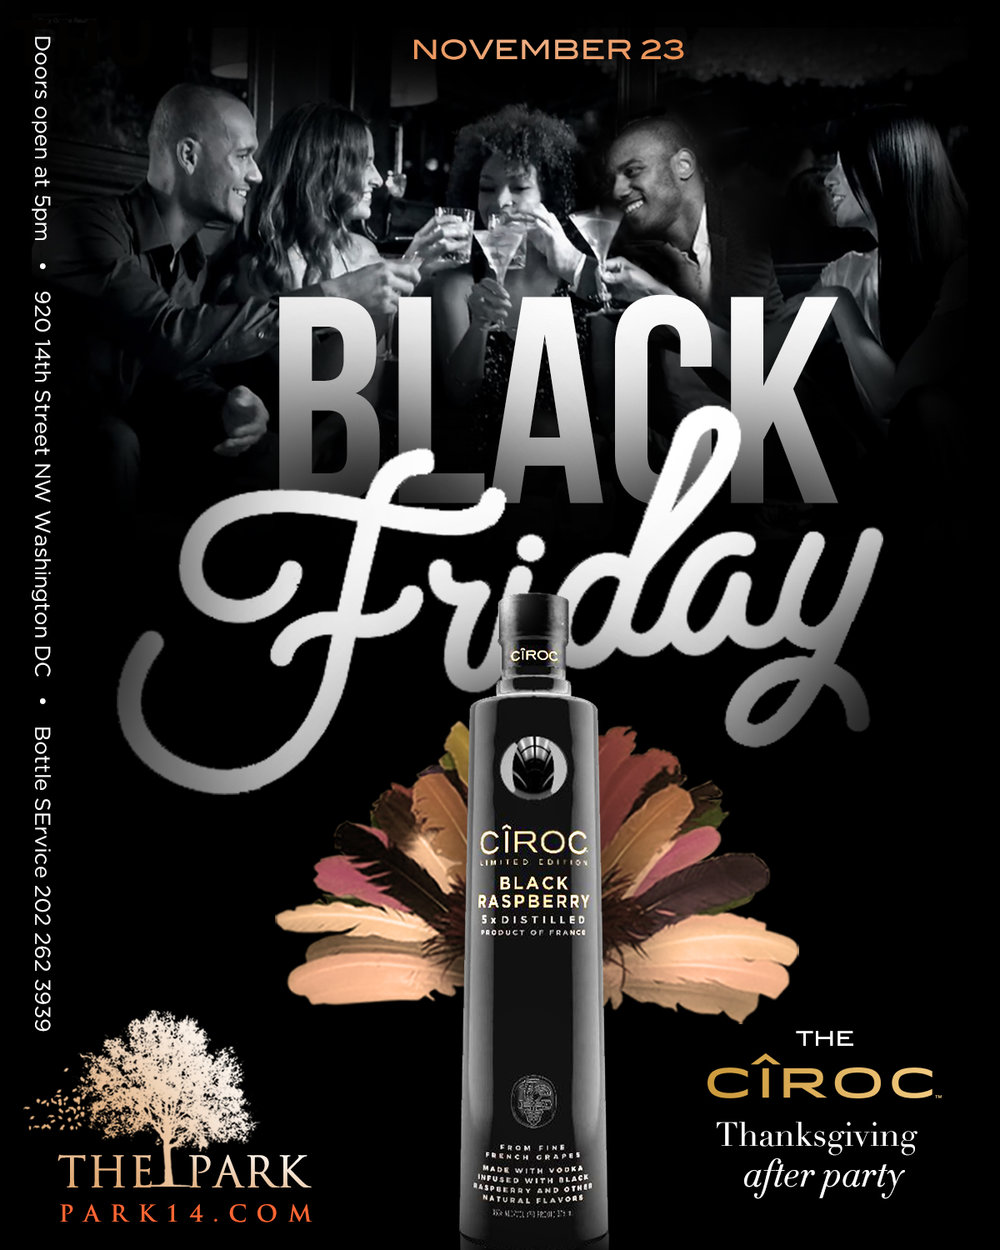 Friday Nov 23 Black Friday Flyer v3.jpg